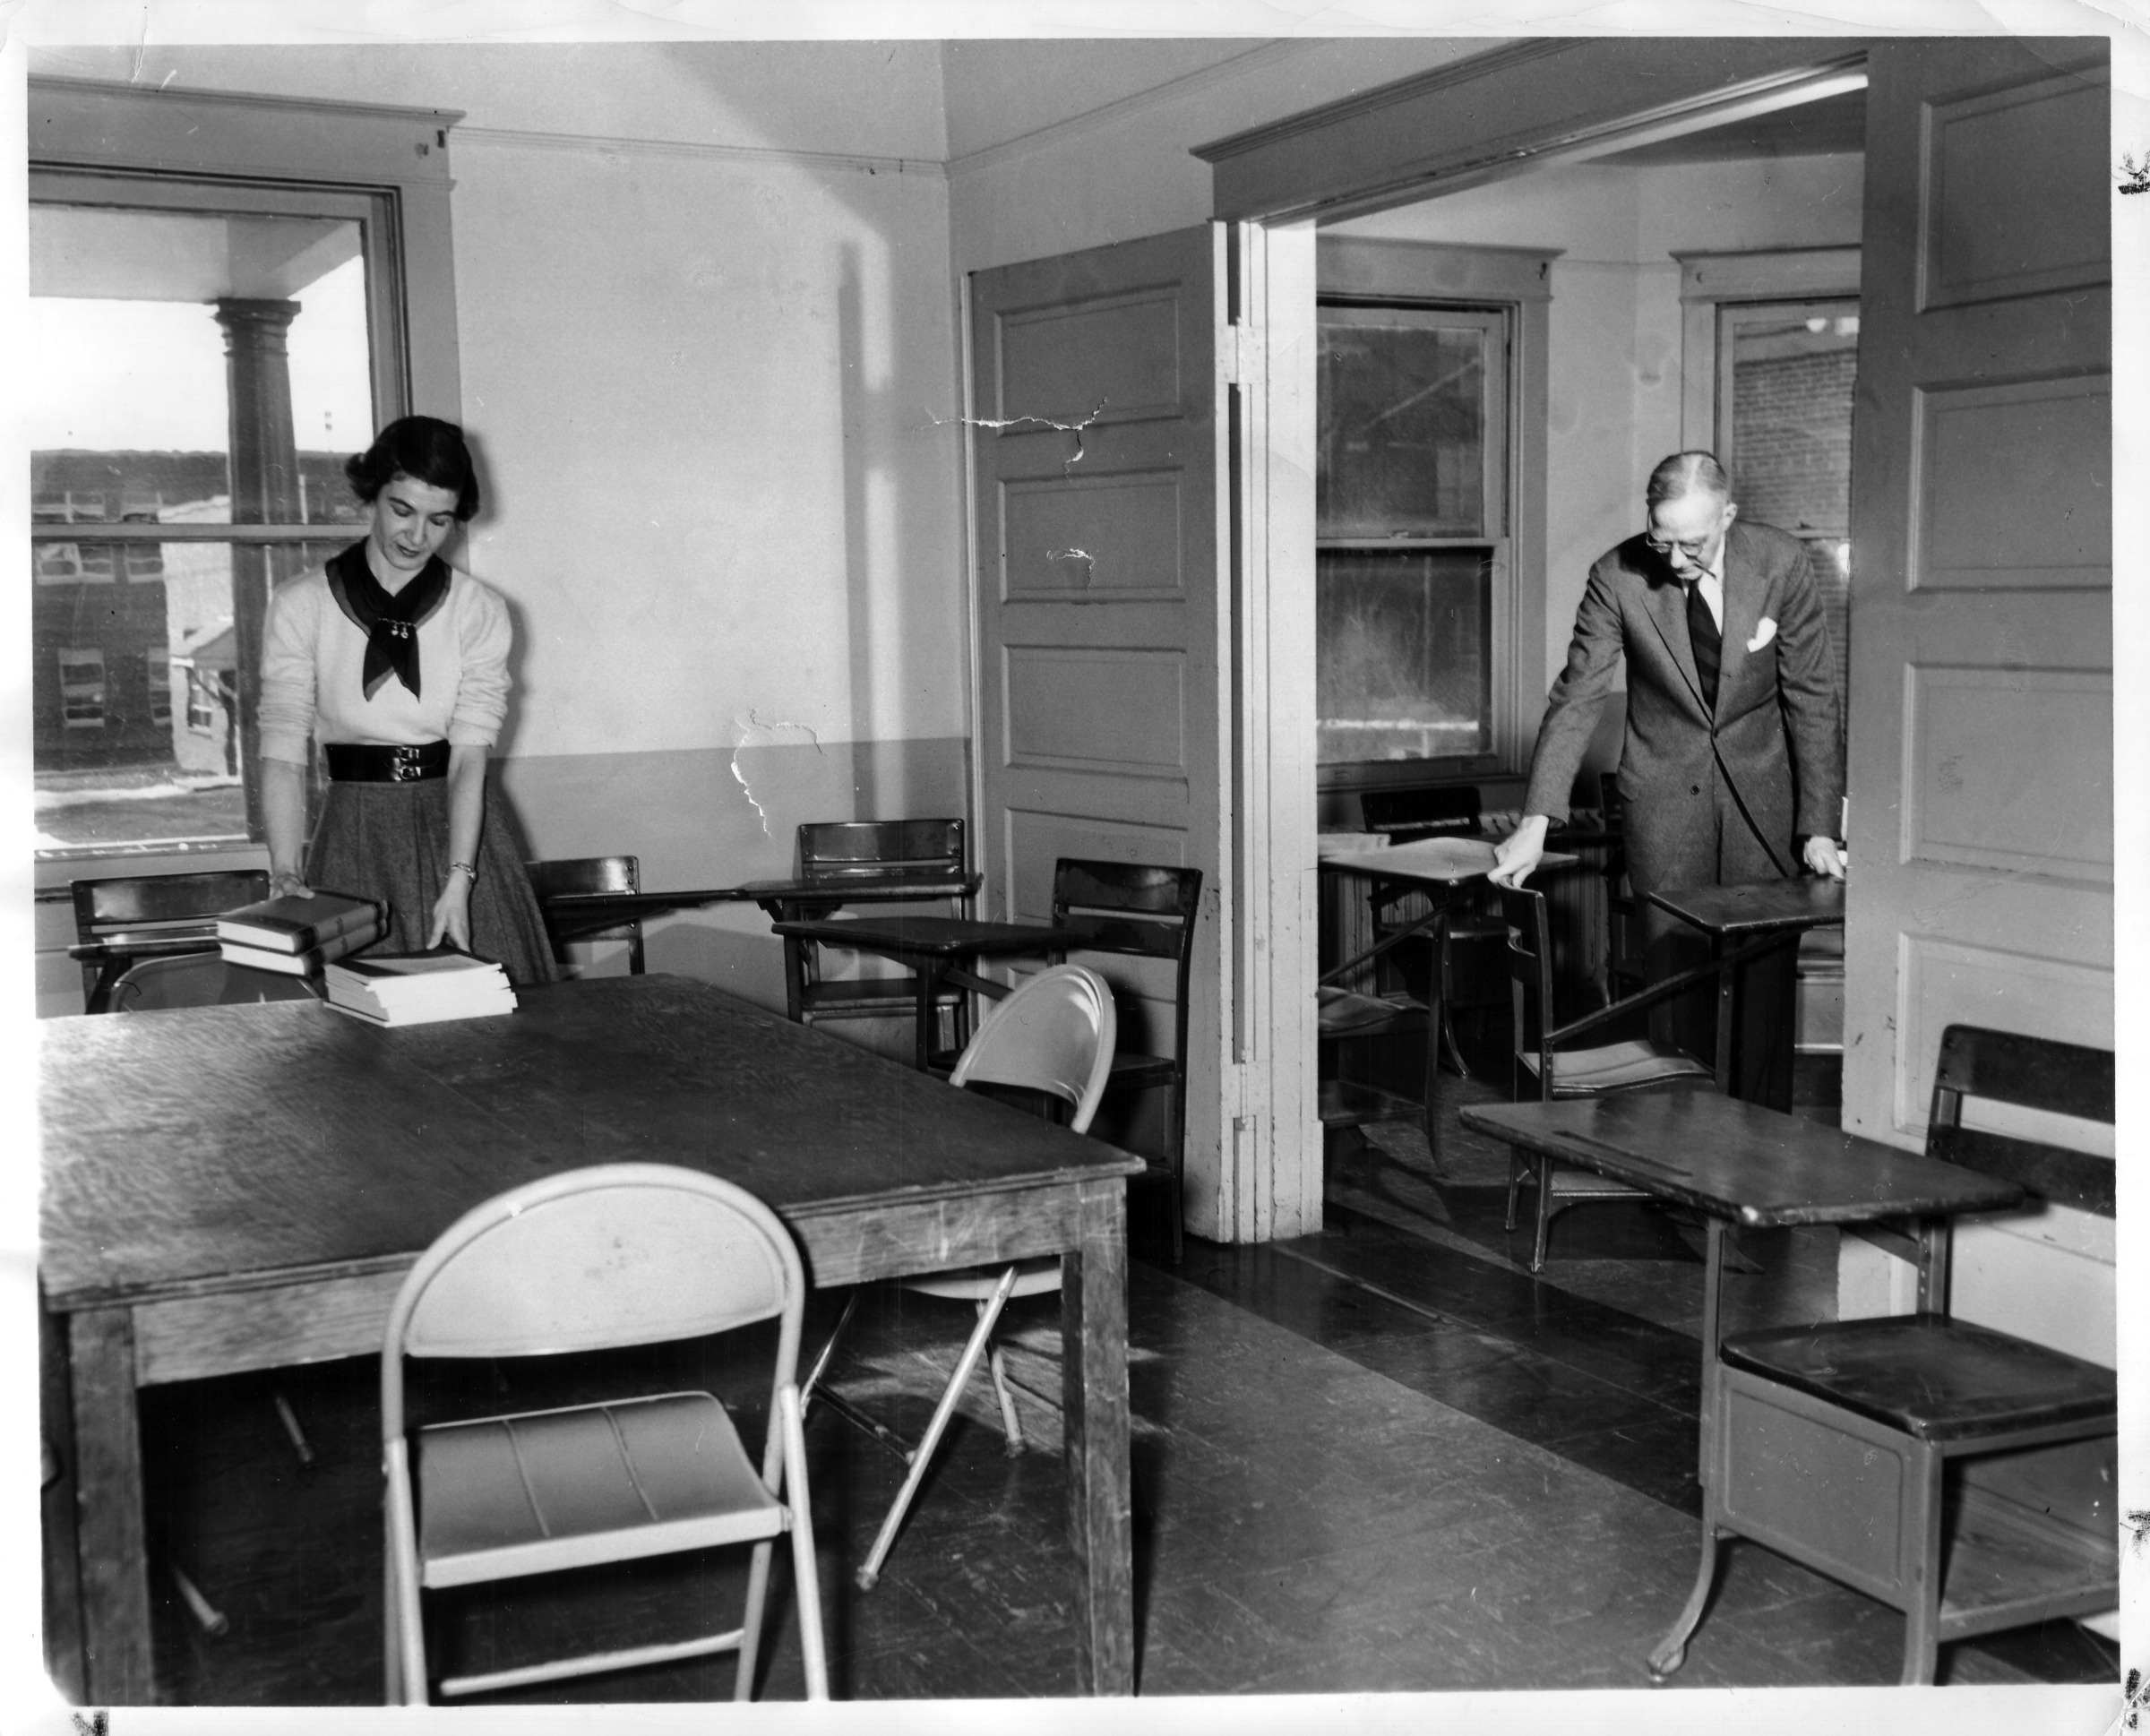 John Norville Gibson Finley and assistant set up desks in a classroom, Northern Virginia University Center, December 22, 1953.